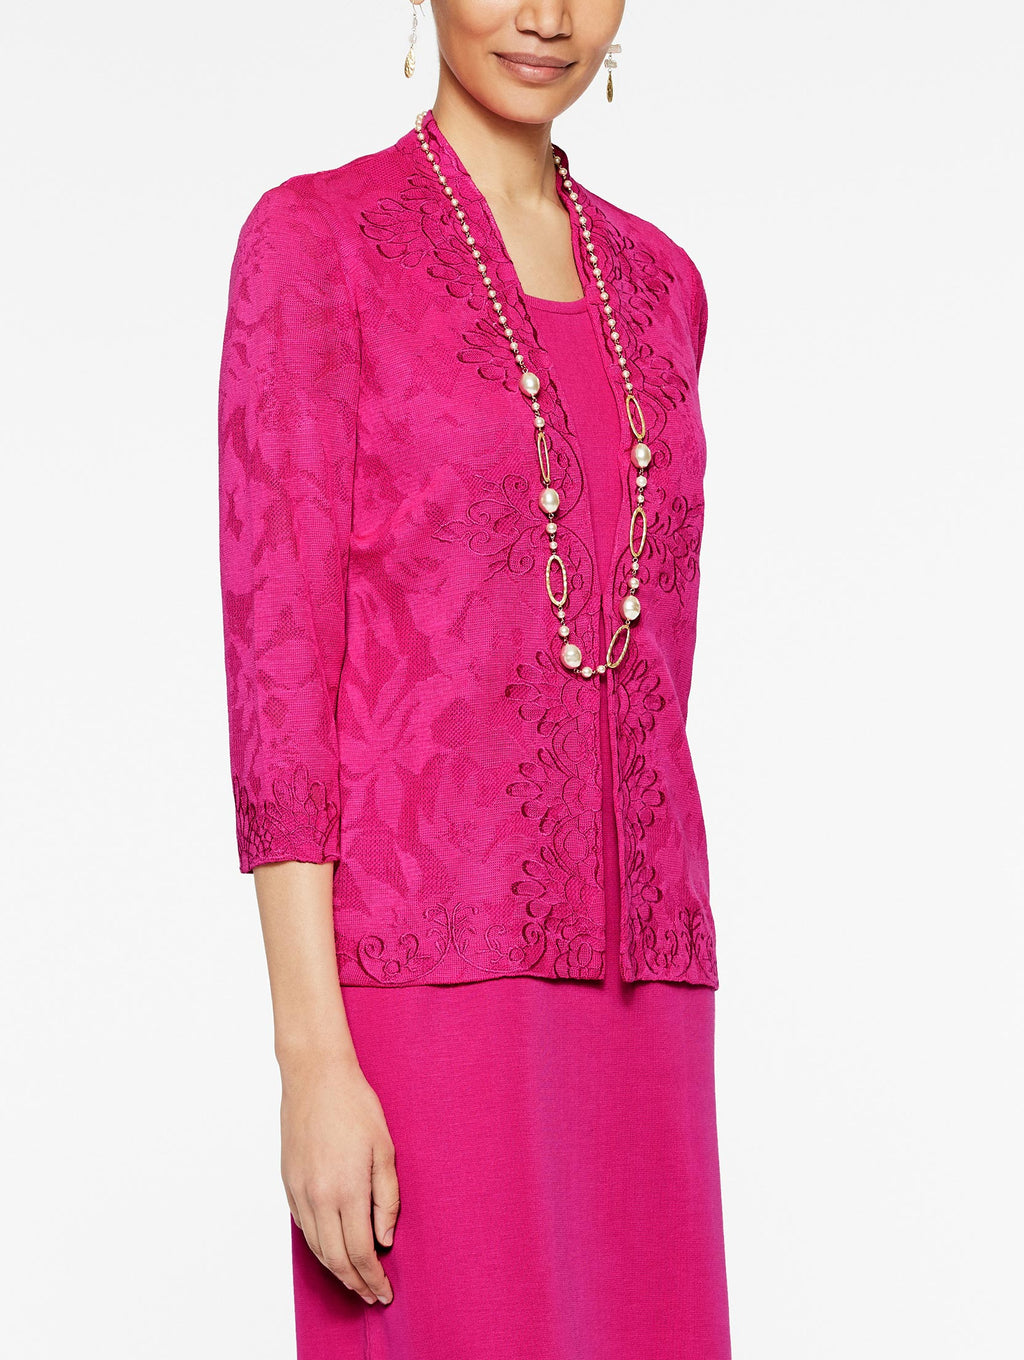 Sheer Floral Pattern and Embroidery Jacket